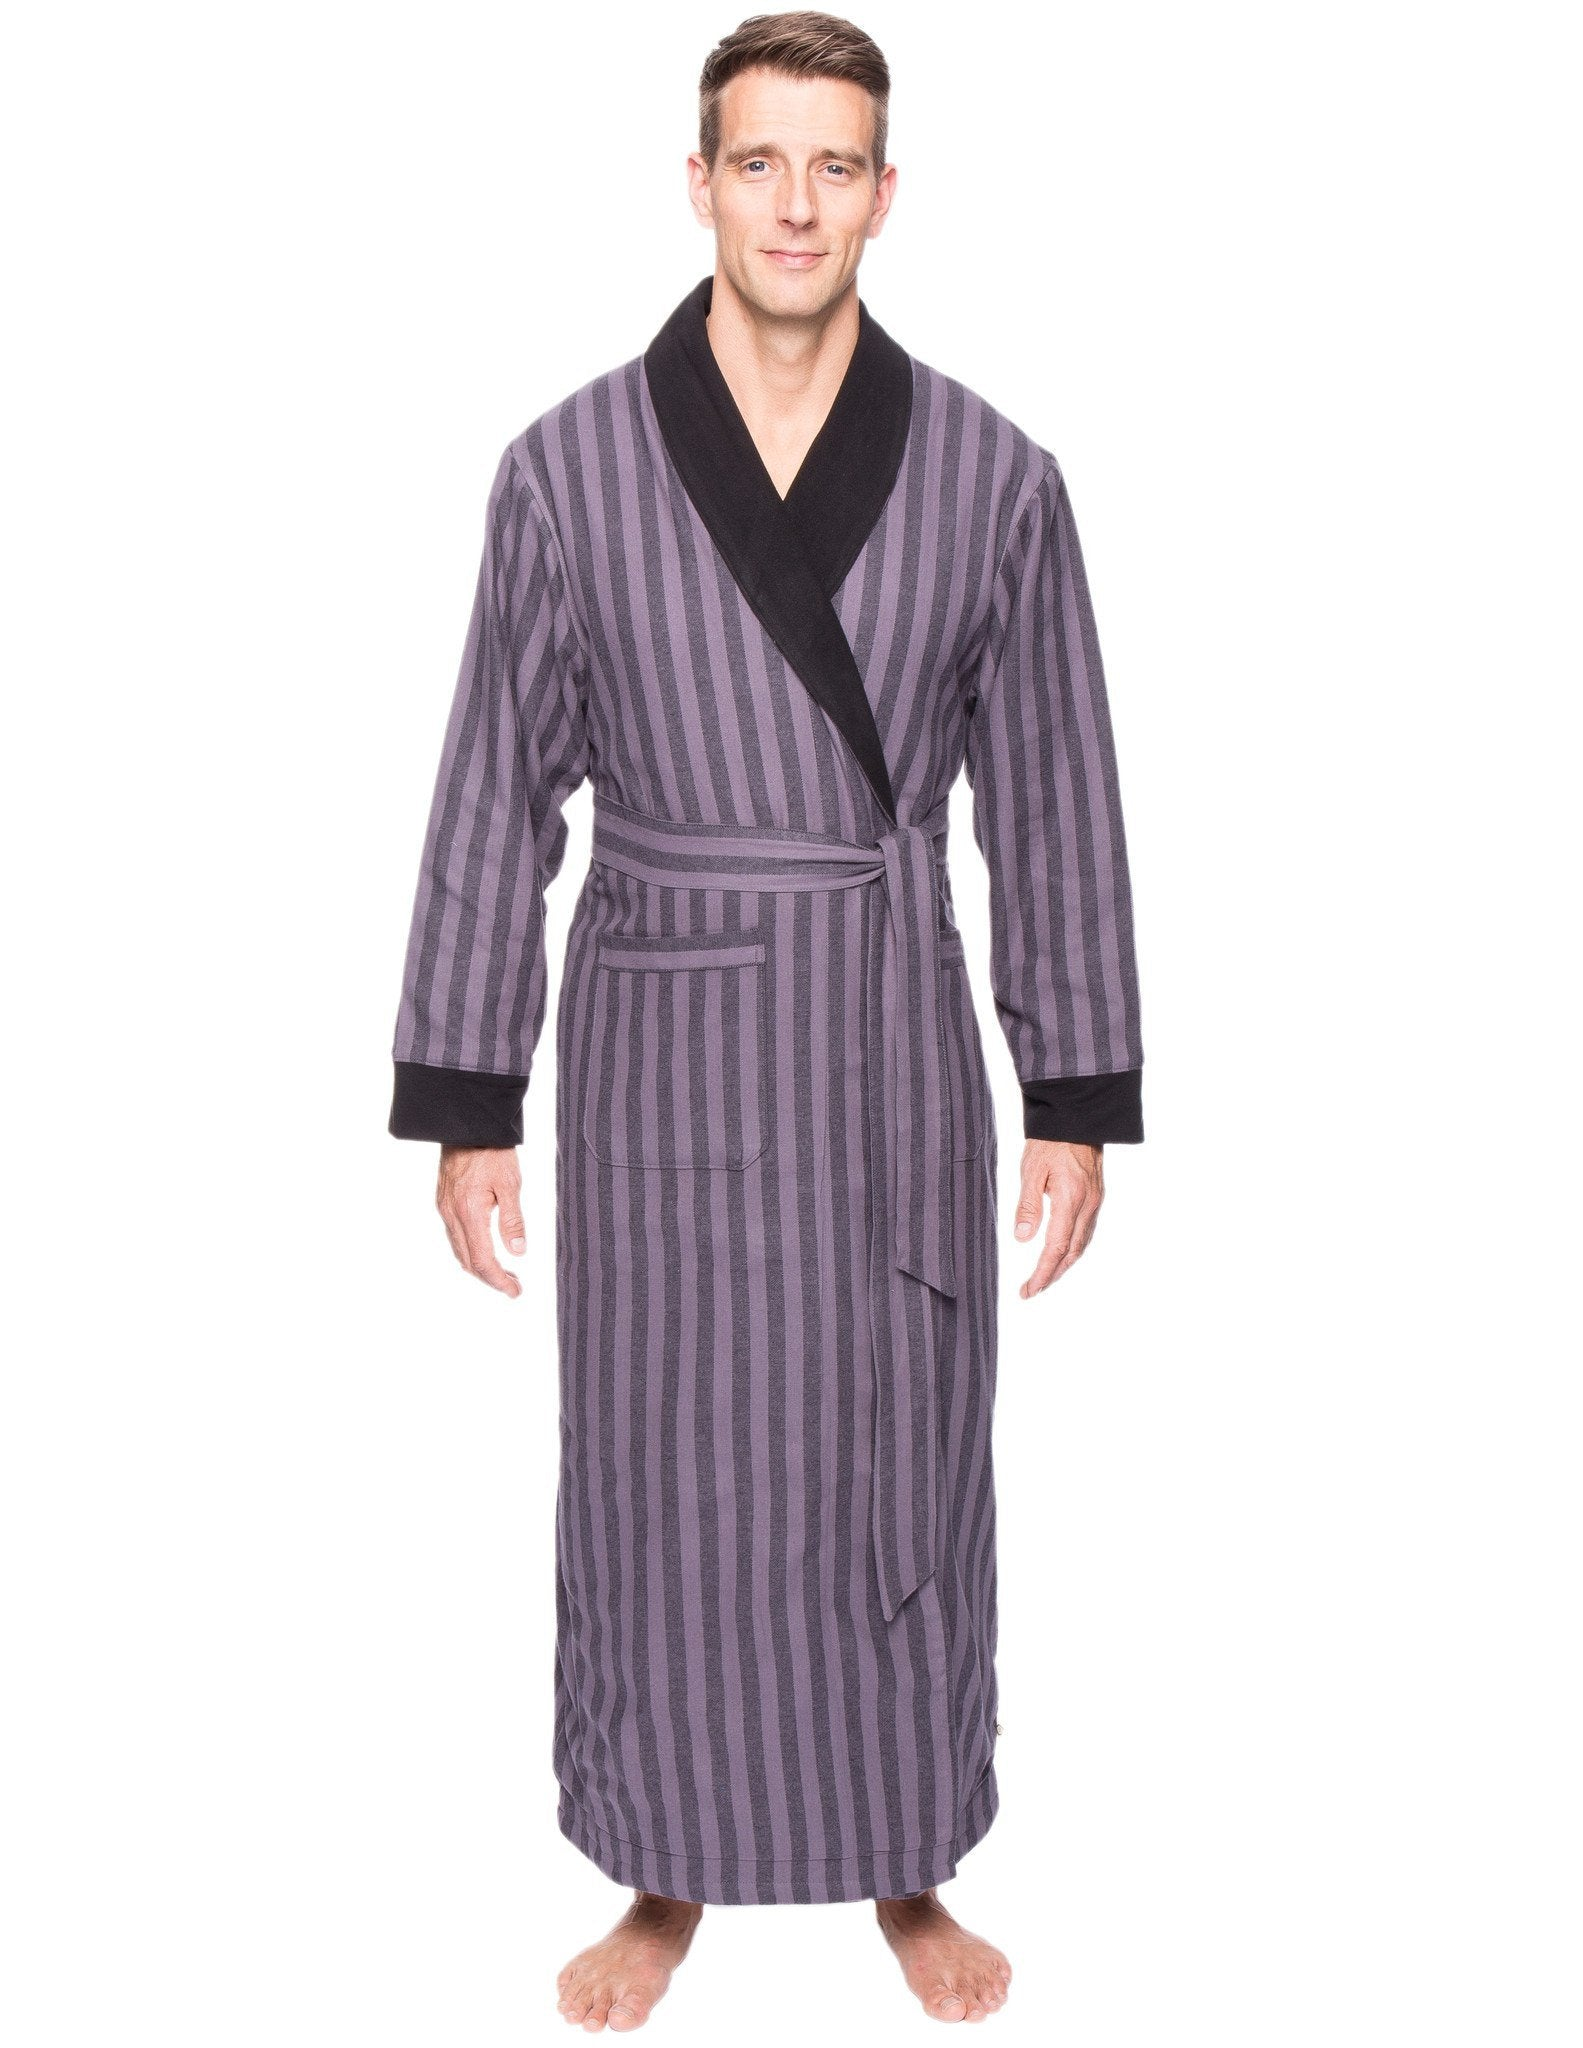 Men's Premium 100% Cotton Flannel Fleece Lined Robe - Stripes Black/Grey